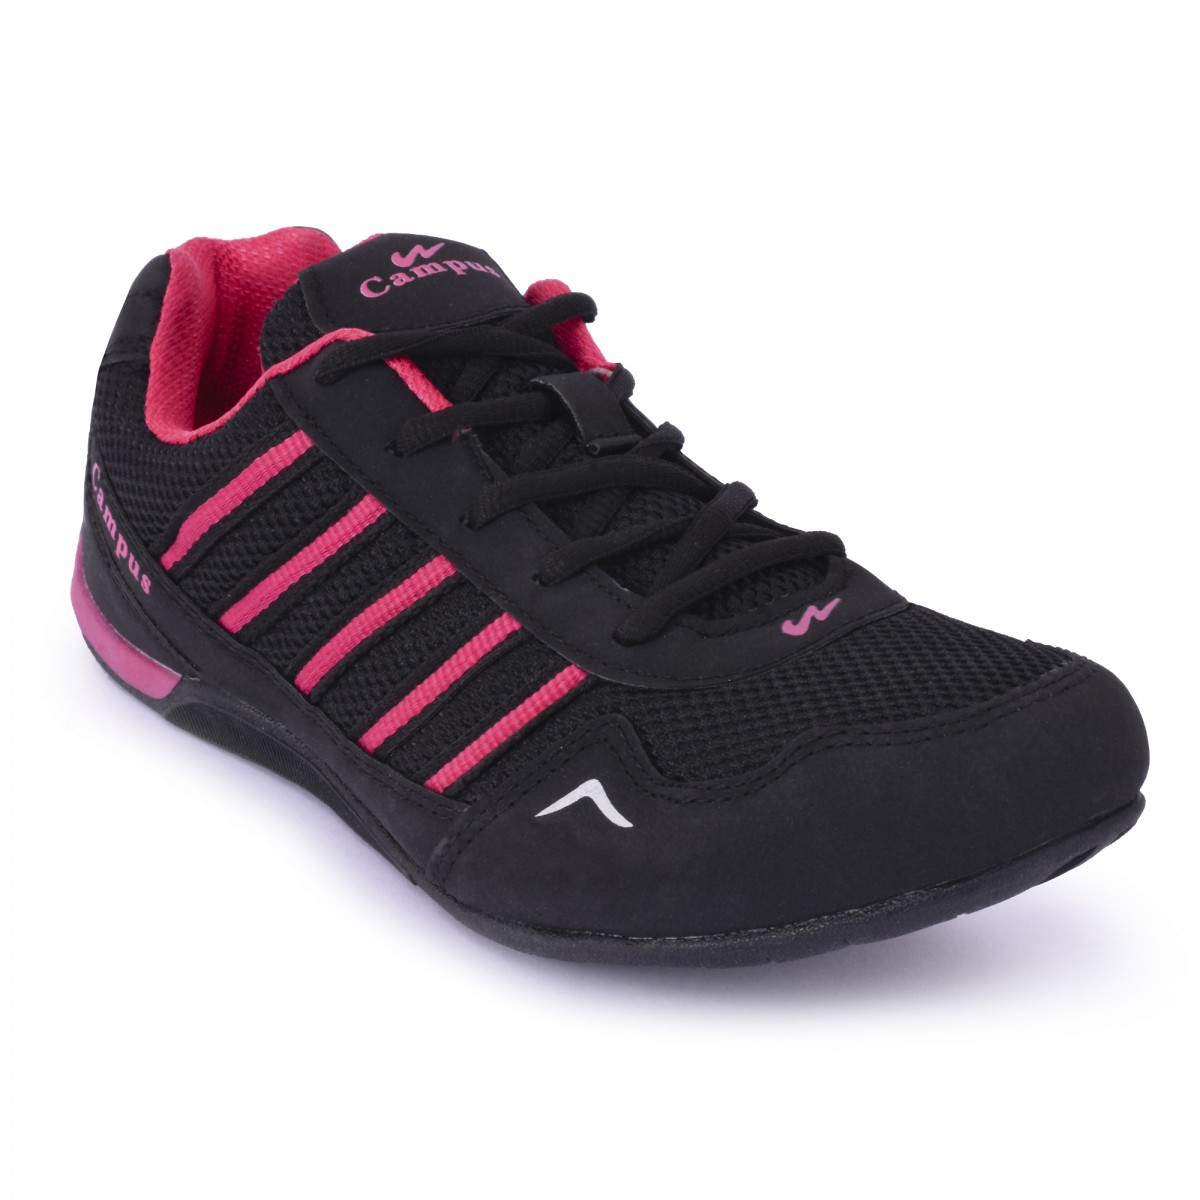 Sport Shoes For Women: Buy Women Sports Shoes online at best